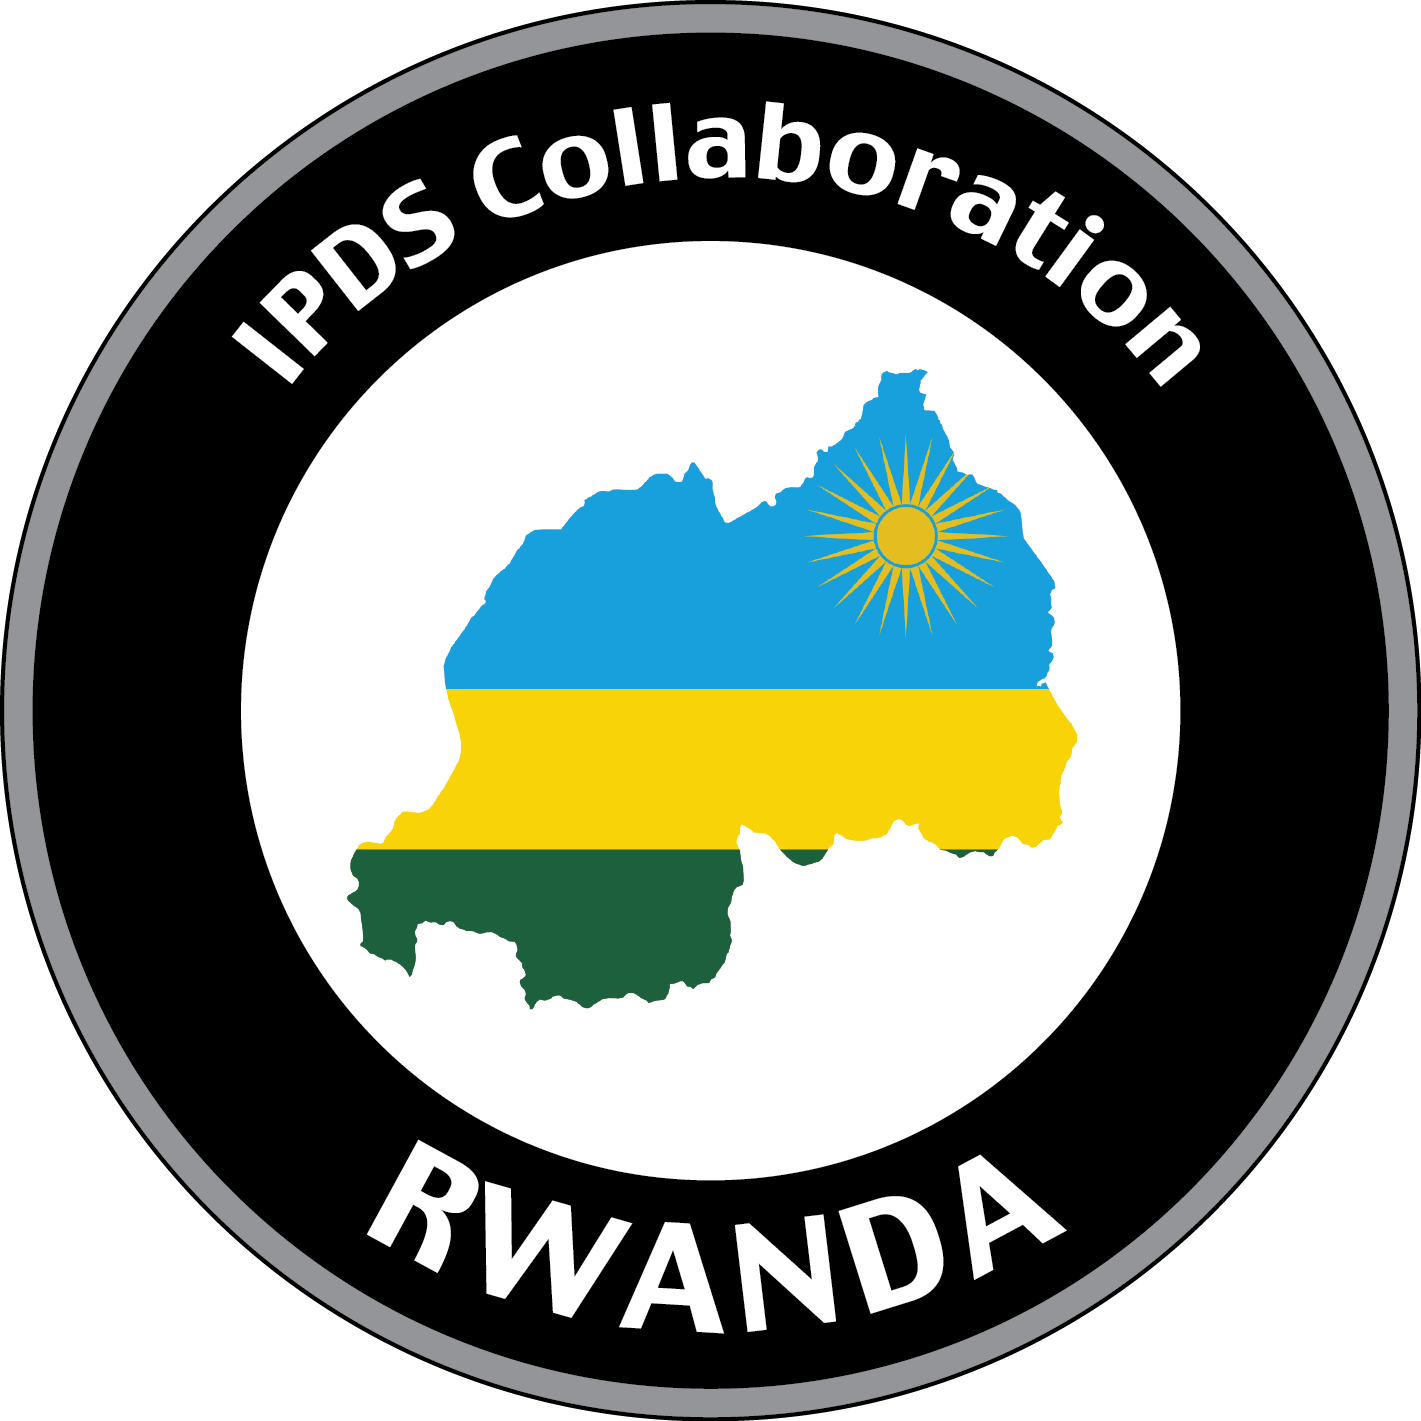 IPDS Collaboration Rwanda icon with country and flag